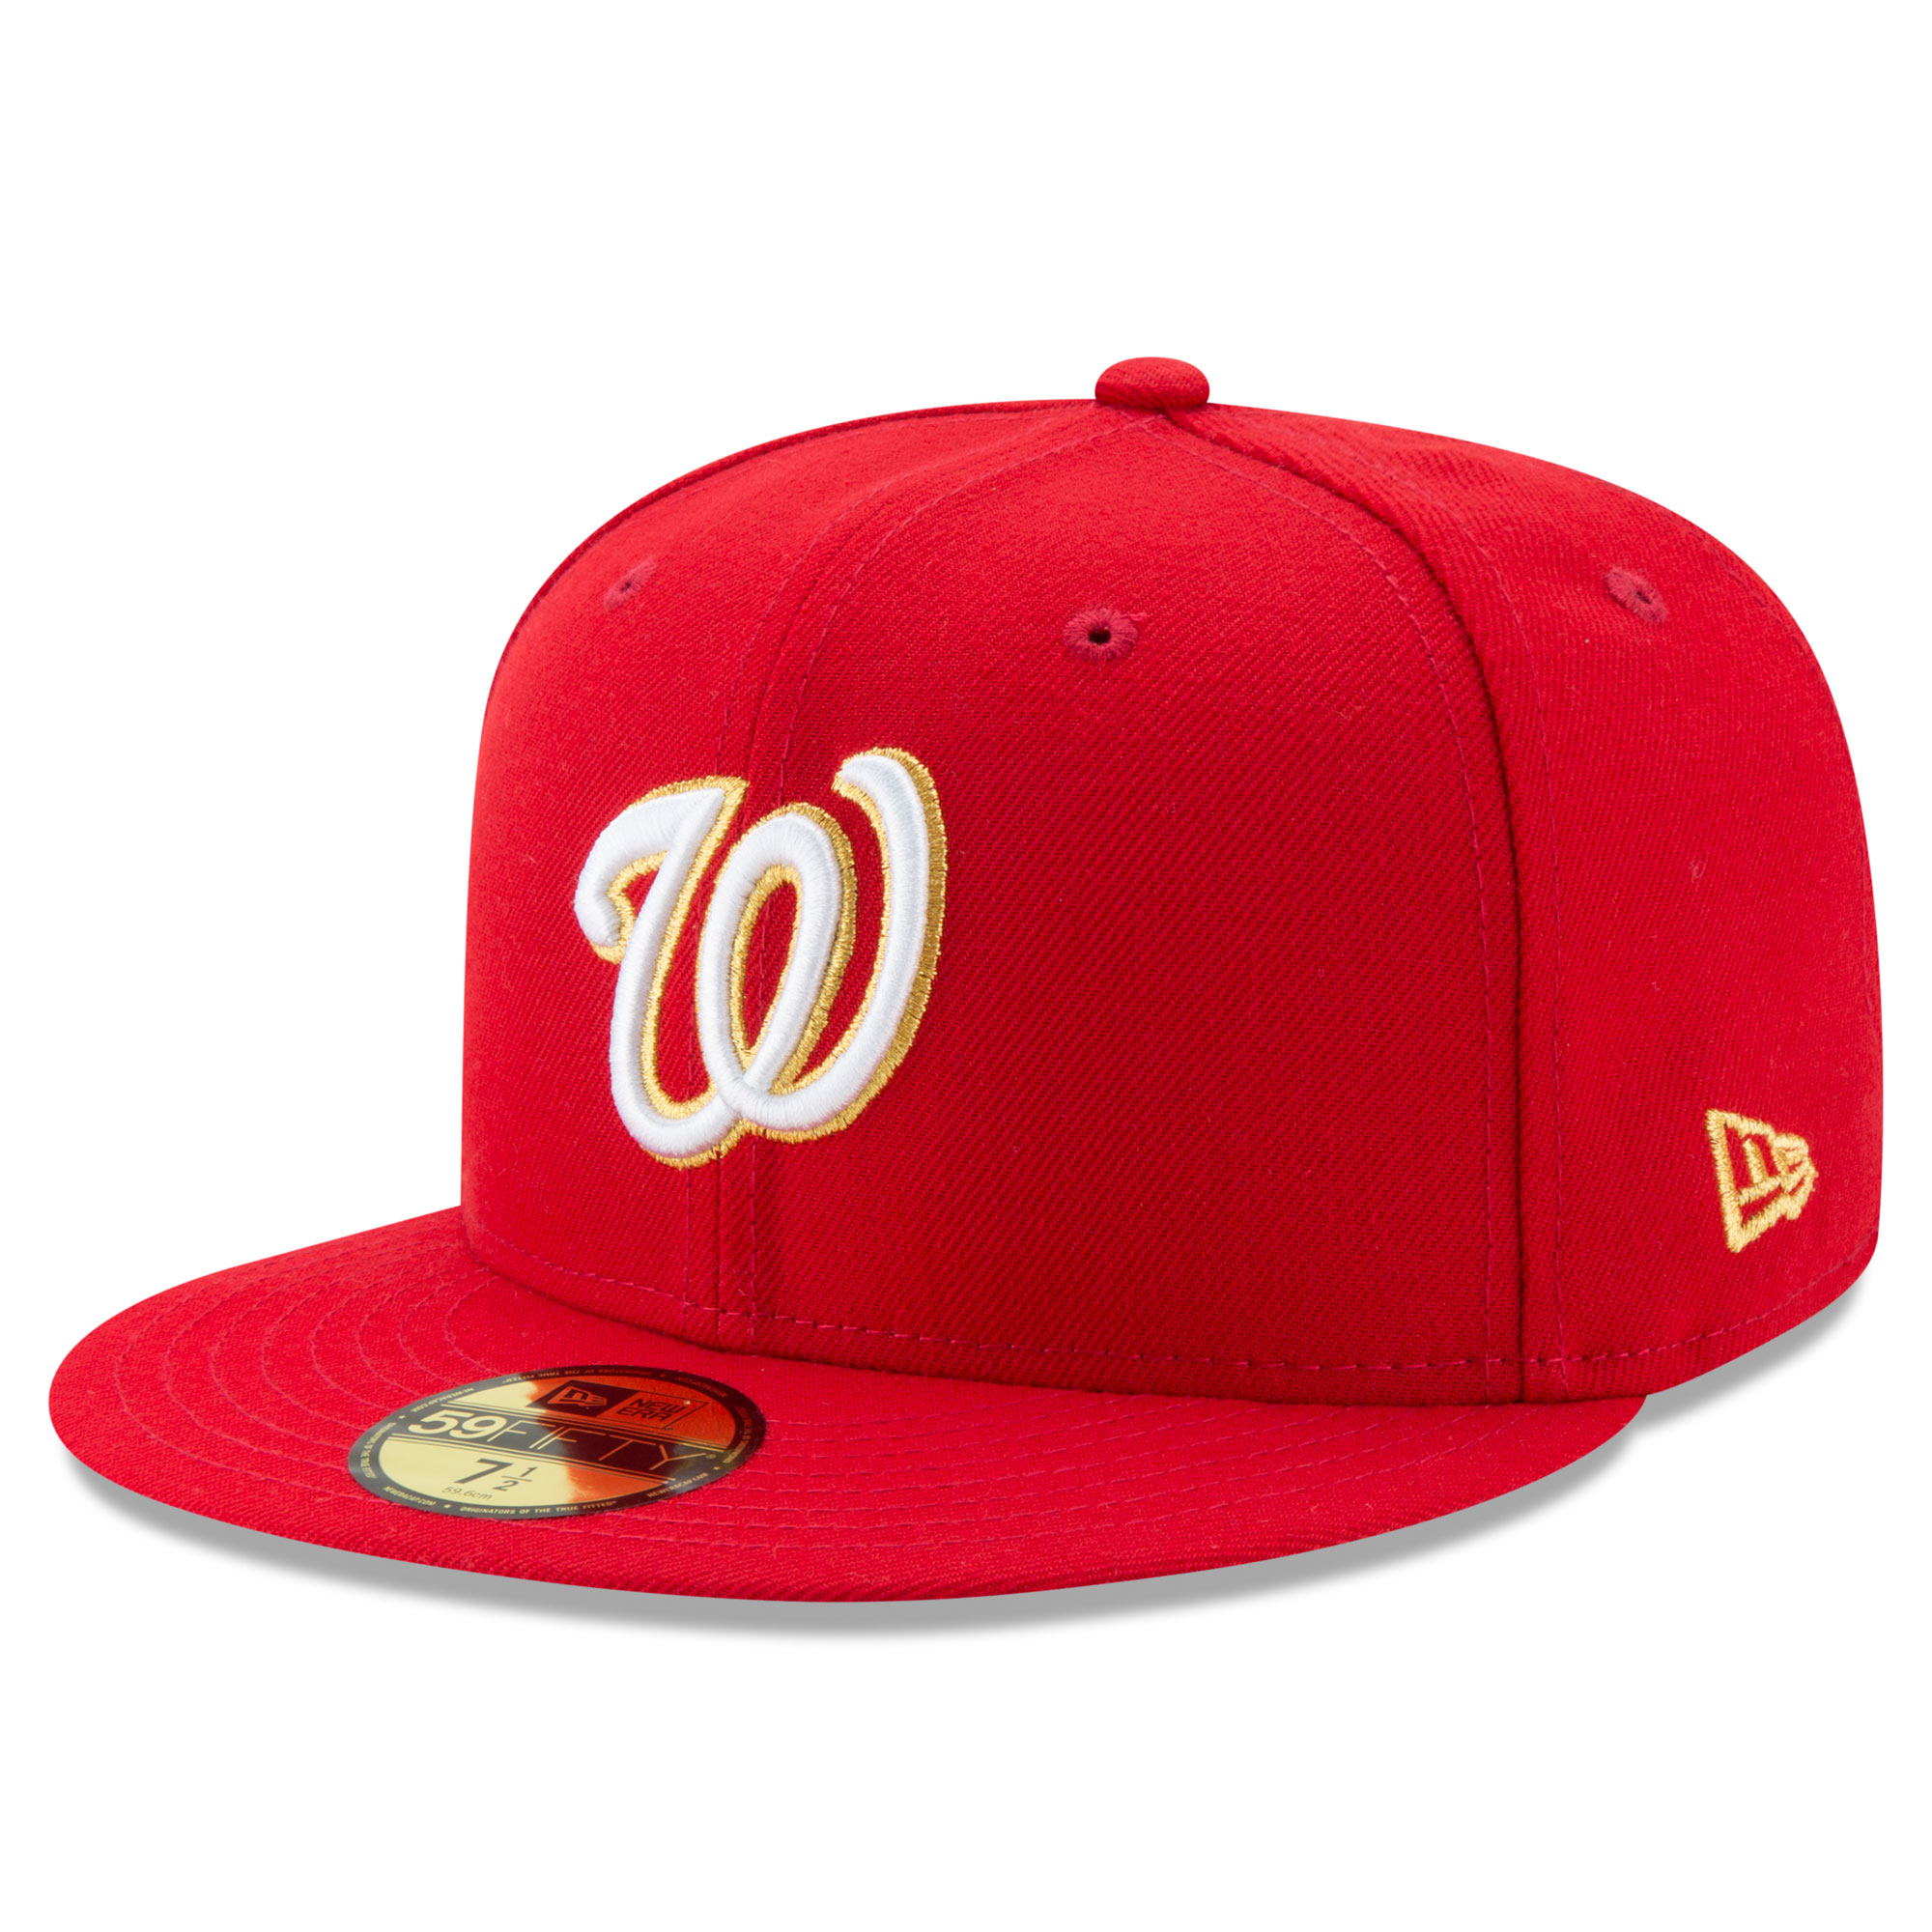 5f013a8ffe14f ... coupon for washington nationals new era gold city 59fifty fitted hat  red walmart 8c8a0 b9126